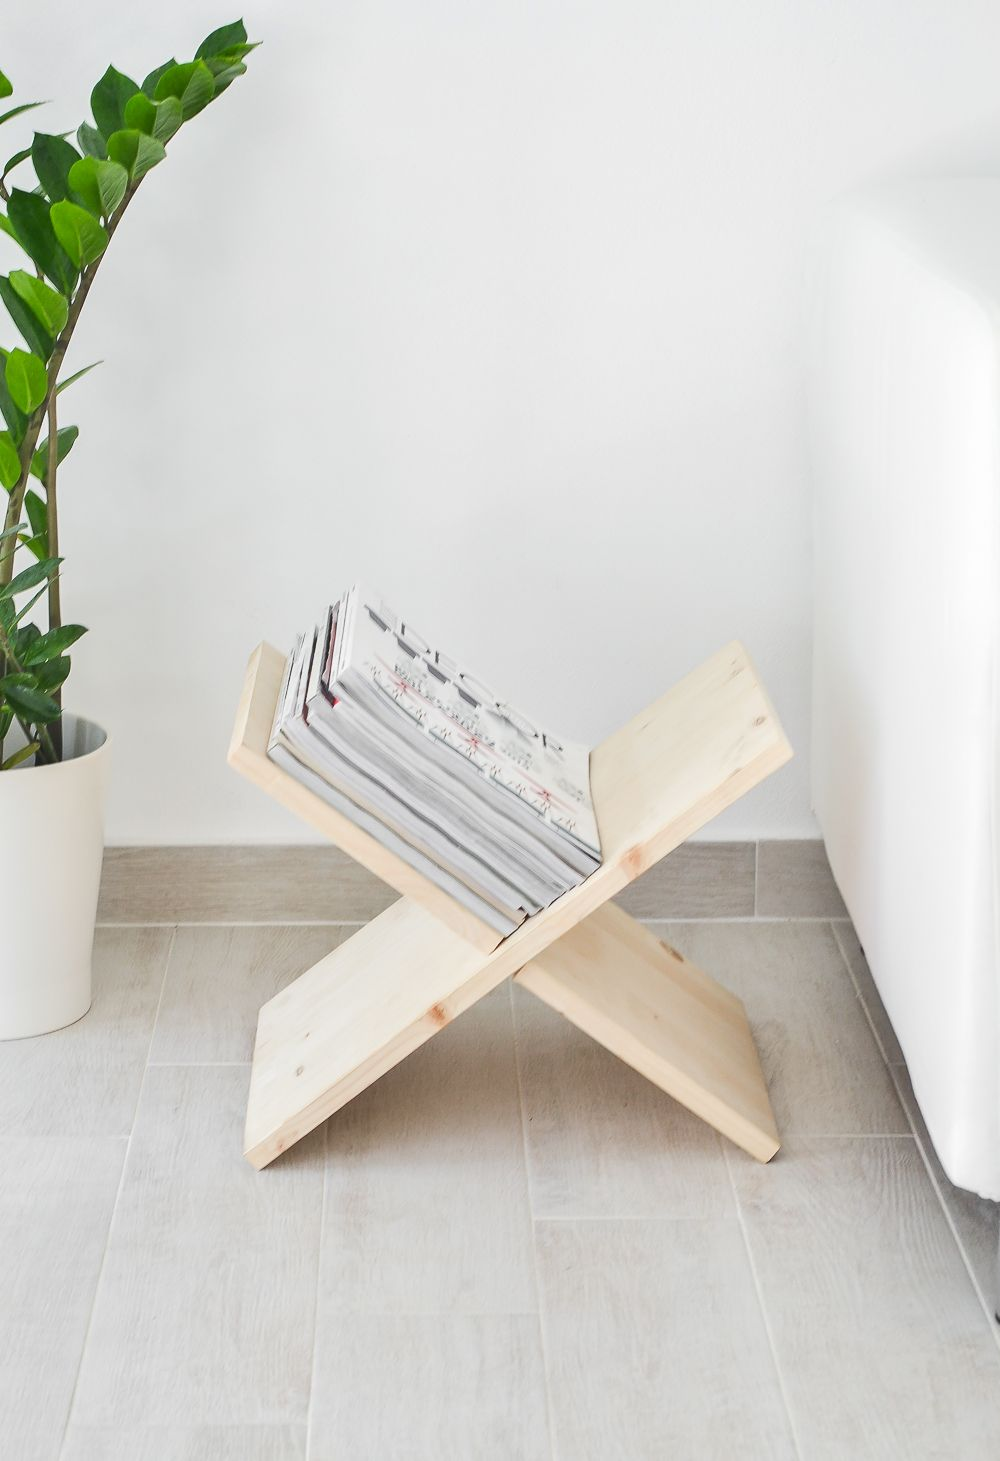 X Shaped Magazine Holder